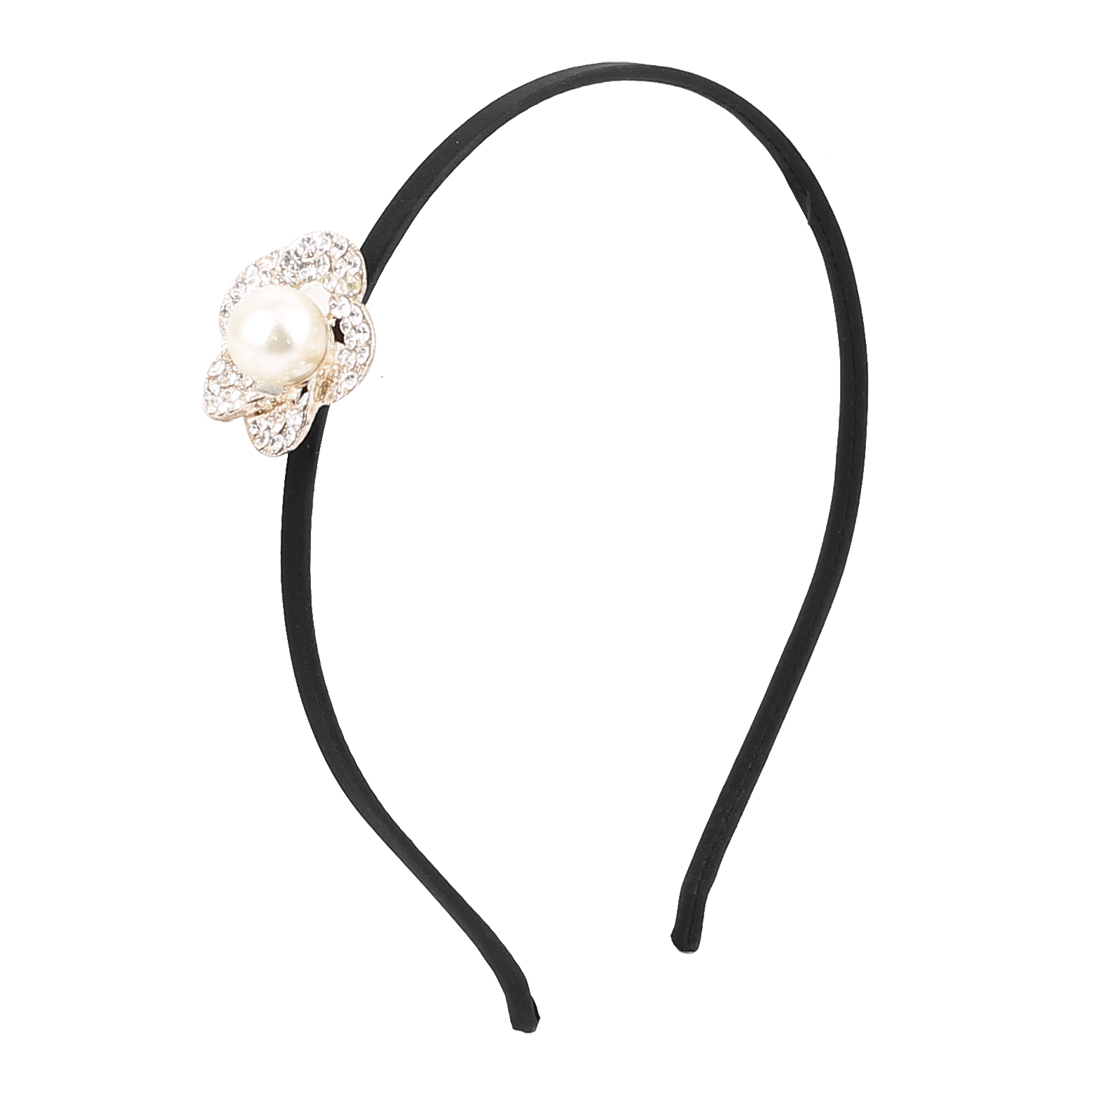 Lady Imitation Pearl Decor Flower Shape Design Hair Hoop Hairband Headband Headdress Hairpin Black